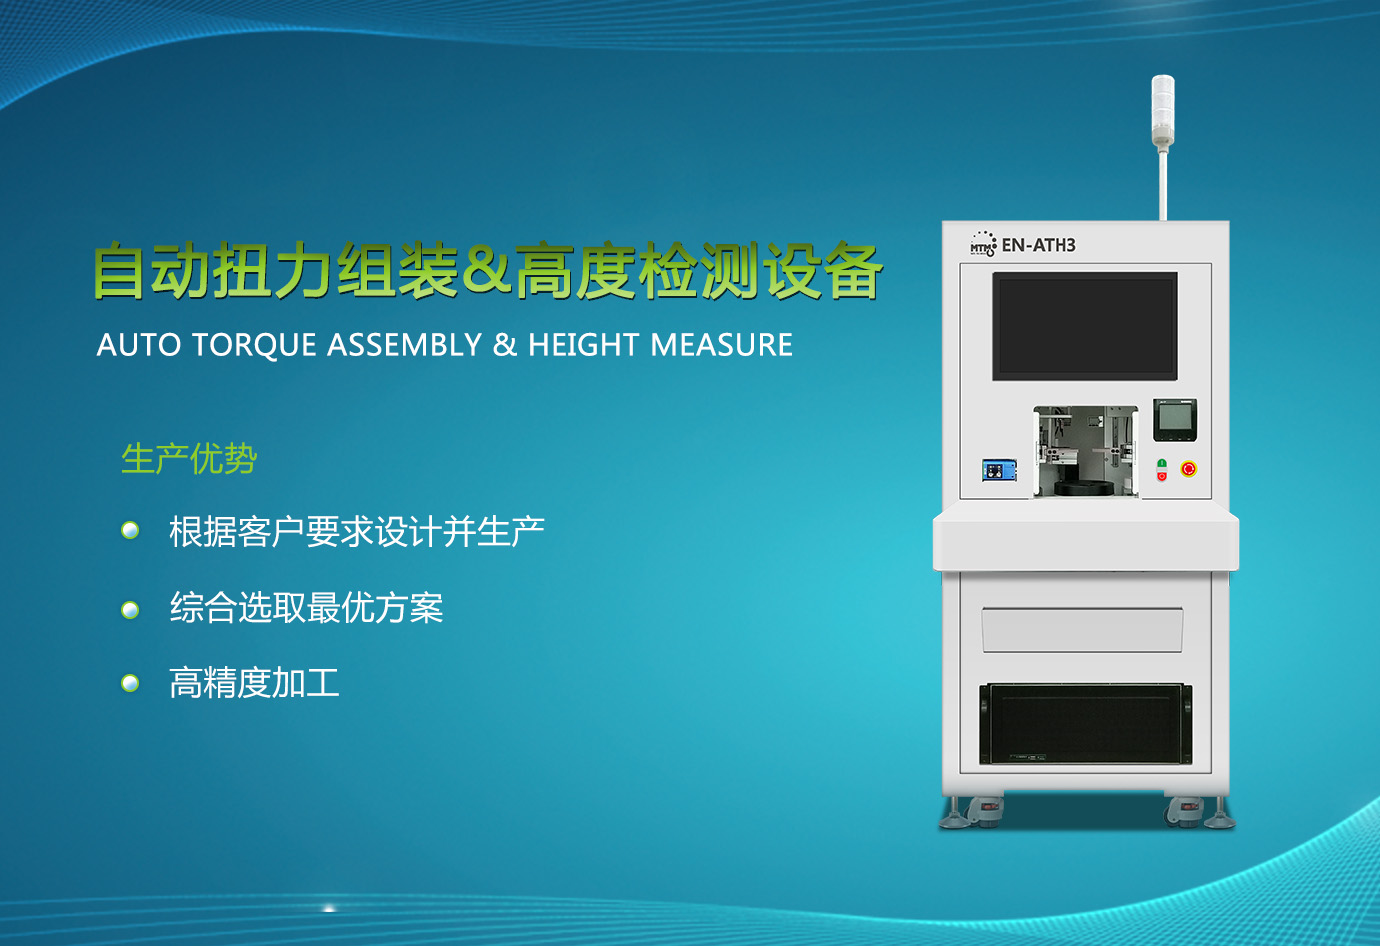 AUTO TORQUE ASSEMBLY & HEIGHT MEASURE MACHINE 【EN-ATH3】